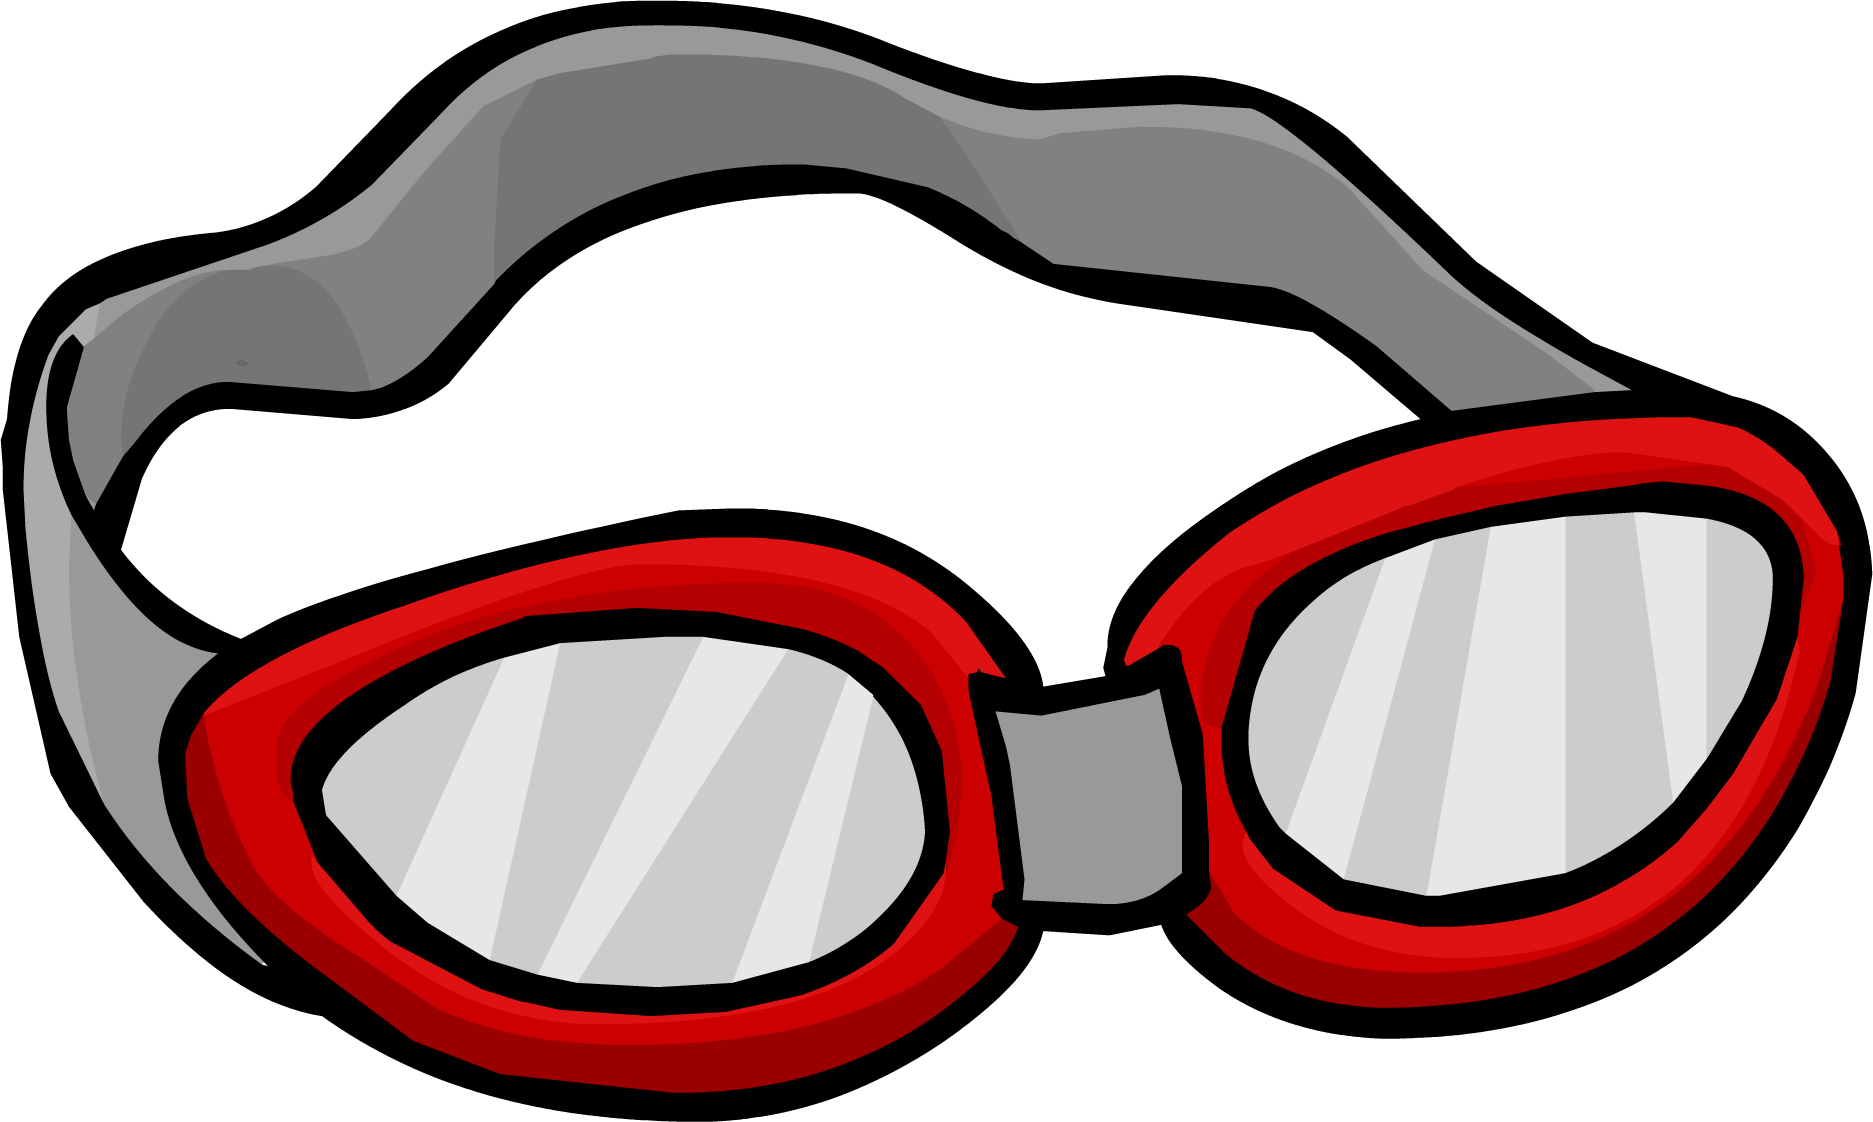 Goggles clipart pool goggles. Swim club penguin wiki